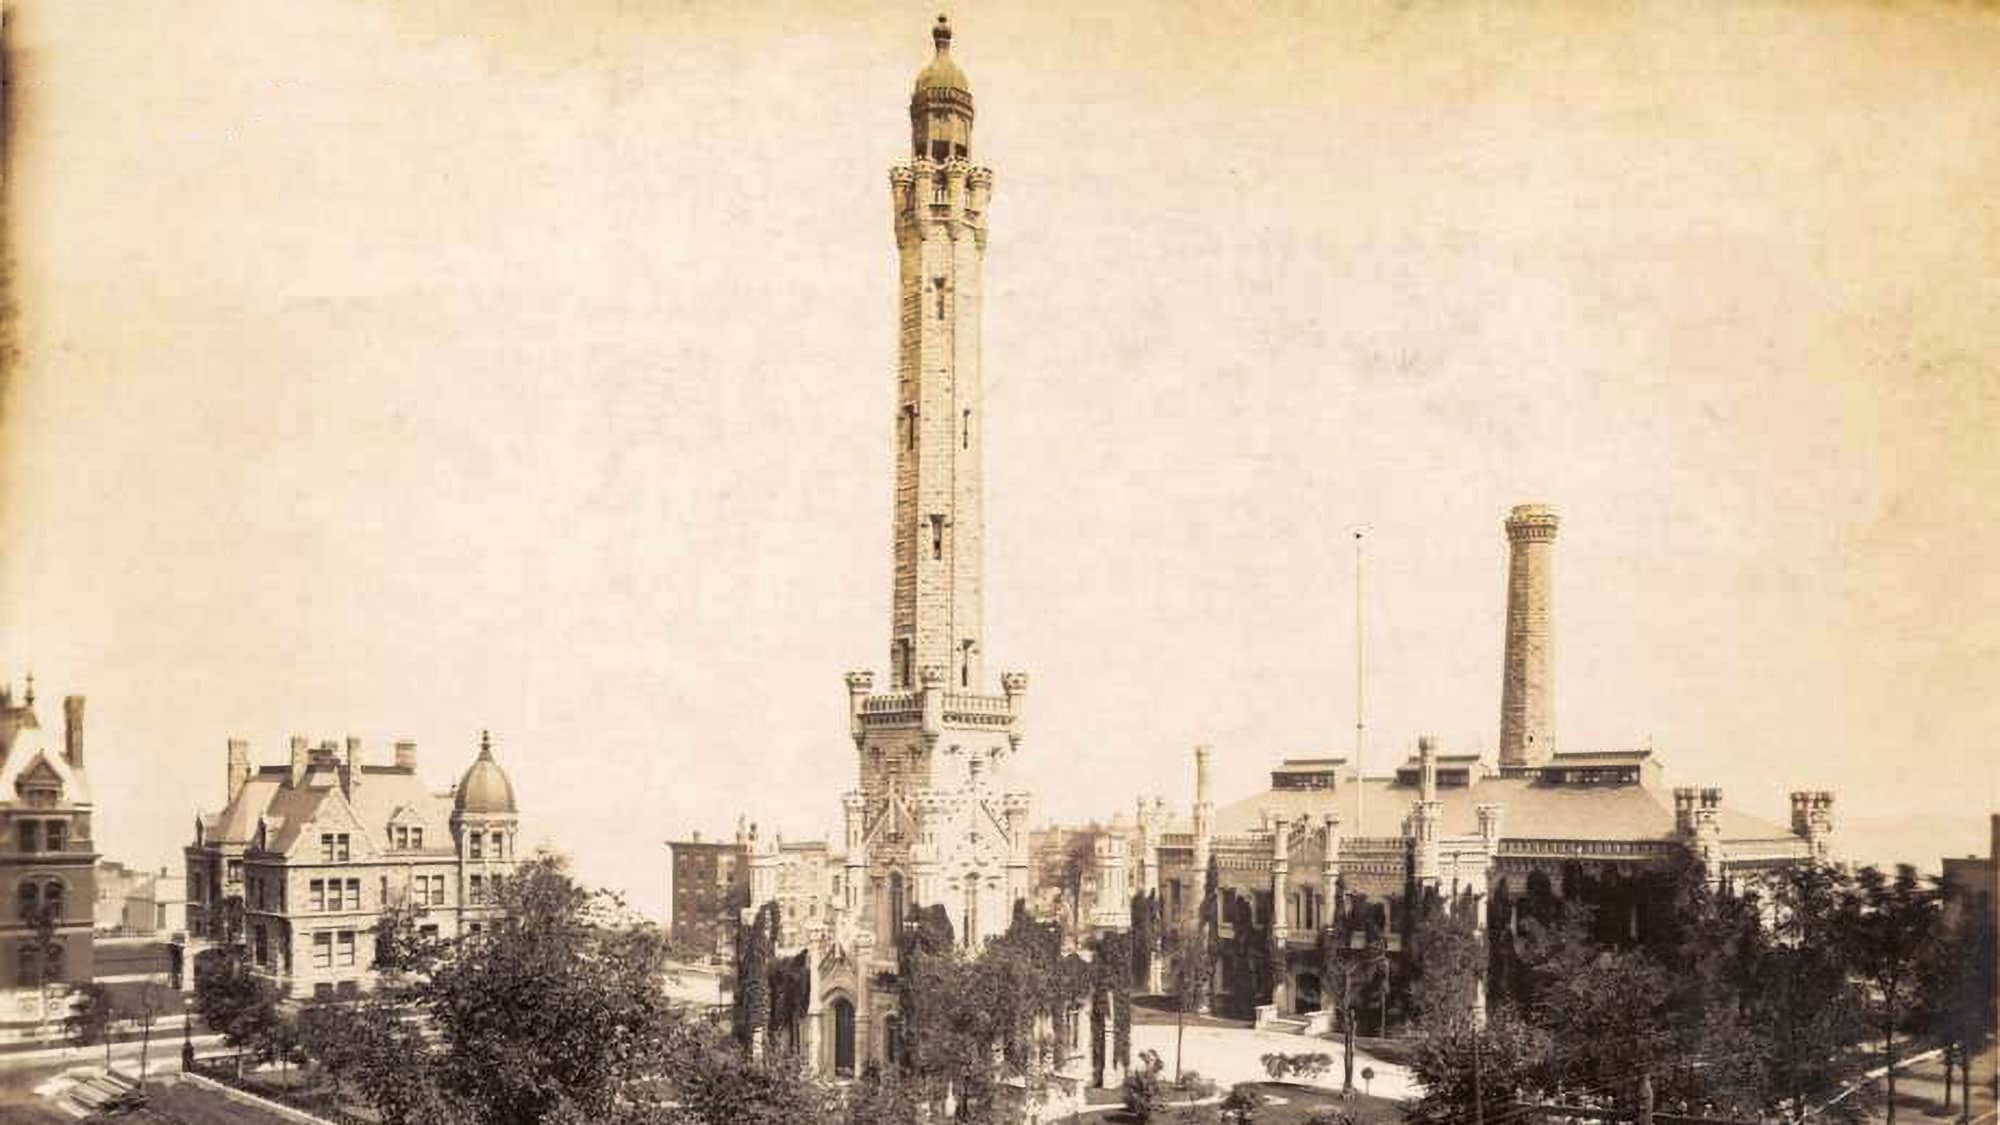 1890 photo of The Water Tower in Chicago